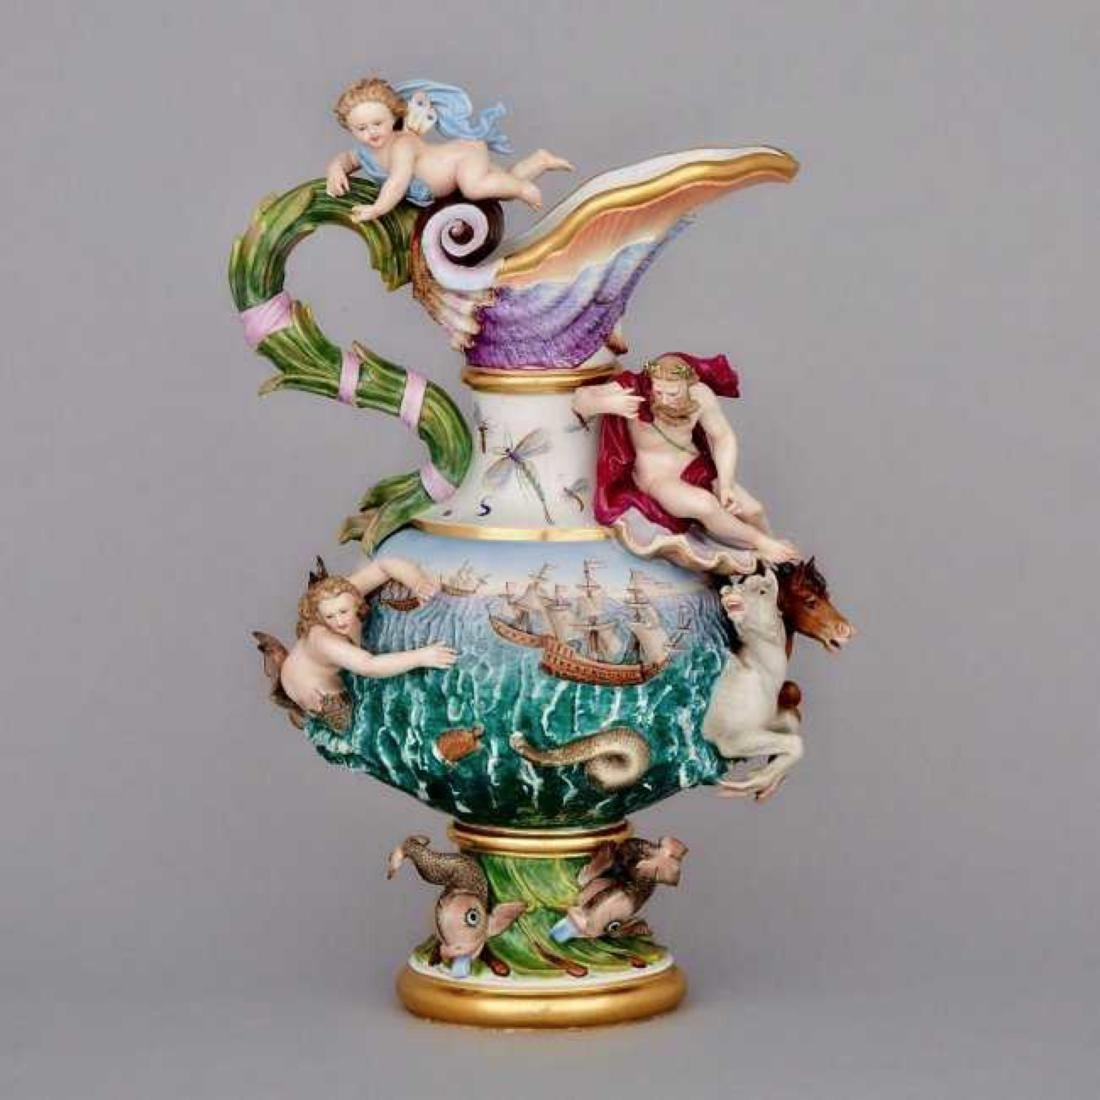 19TH C. MEISSEN EWER DEPICTING WATER